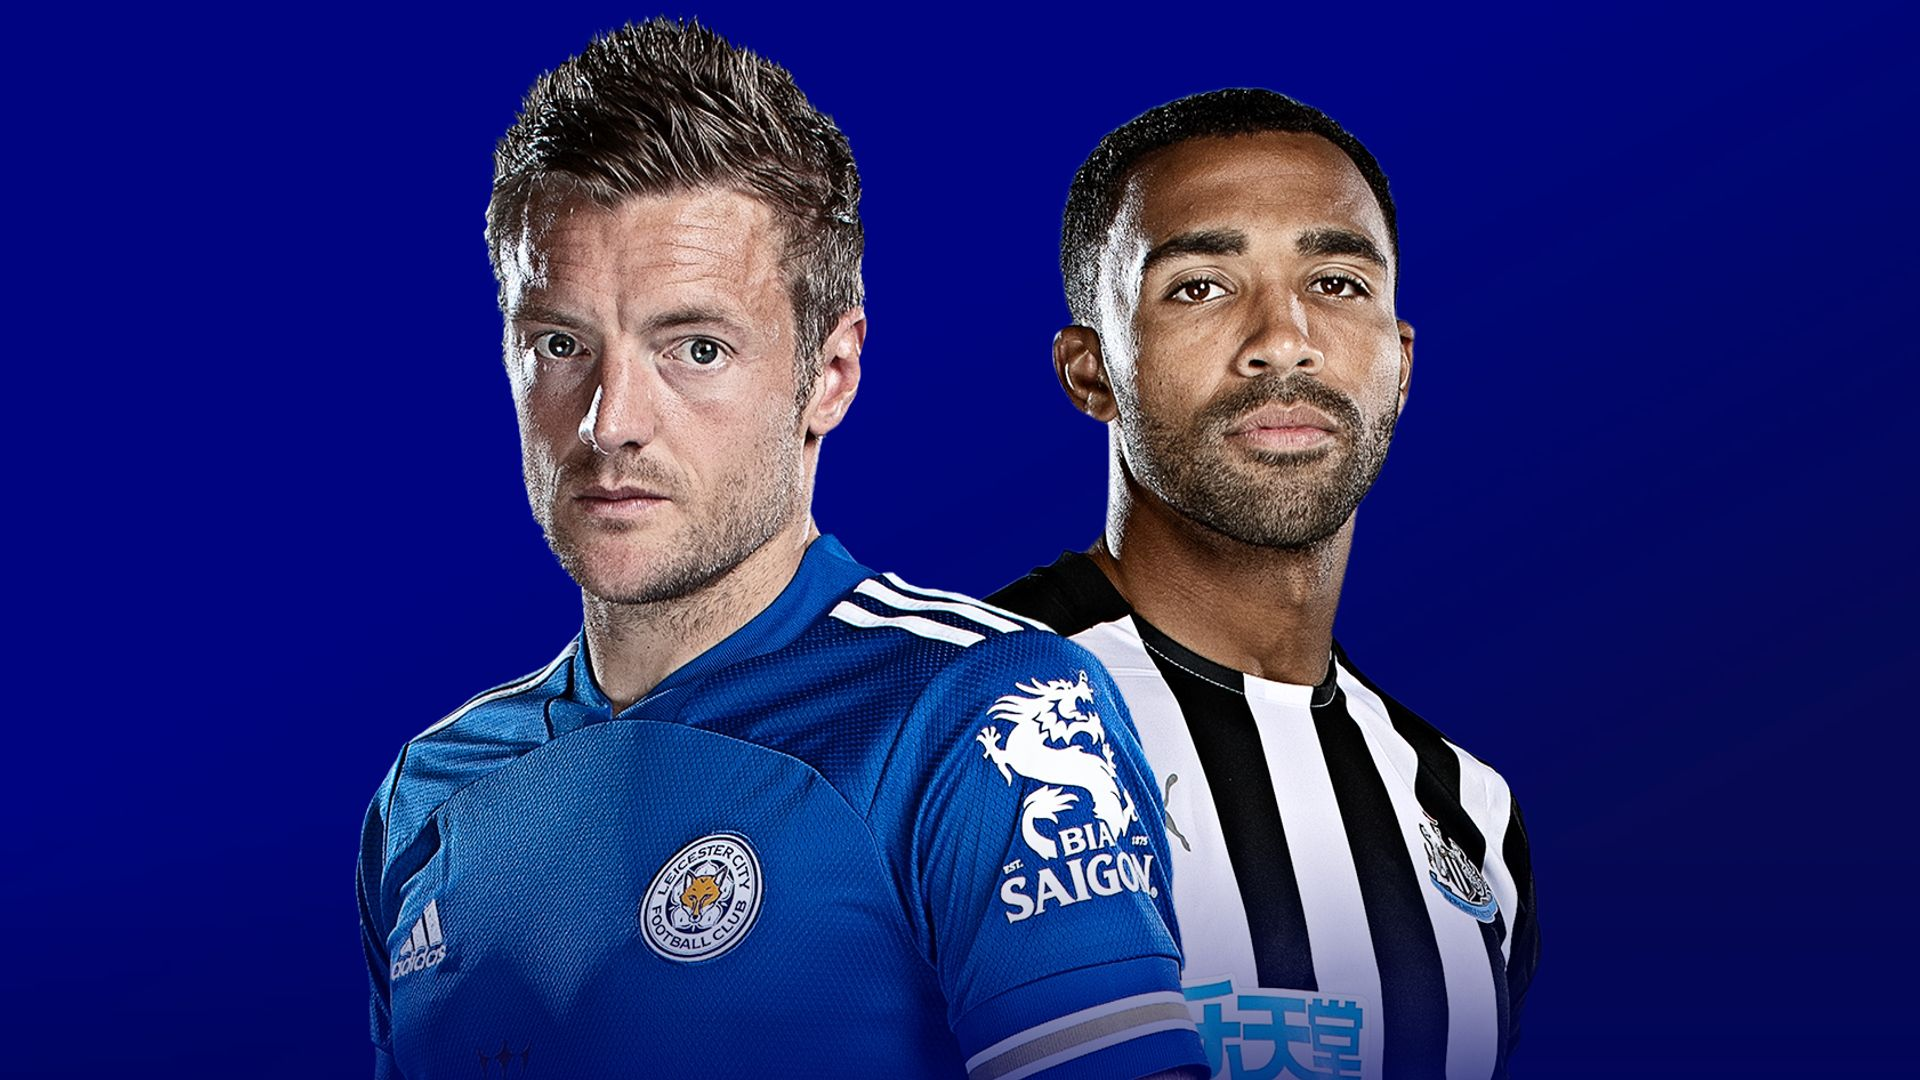 Leicester vs Newcastle on Sky: Vardy fit, Schar banned - sky sports